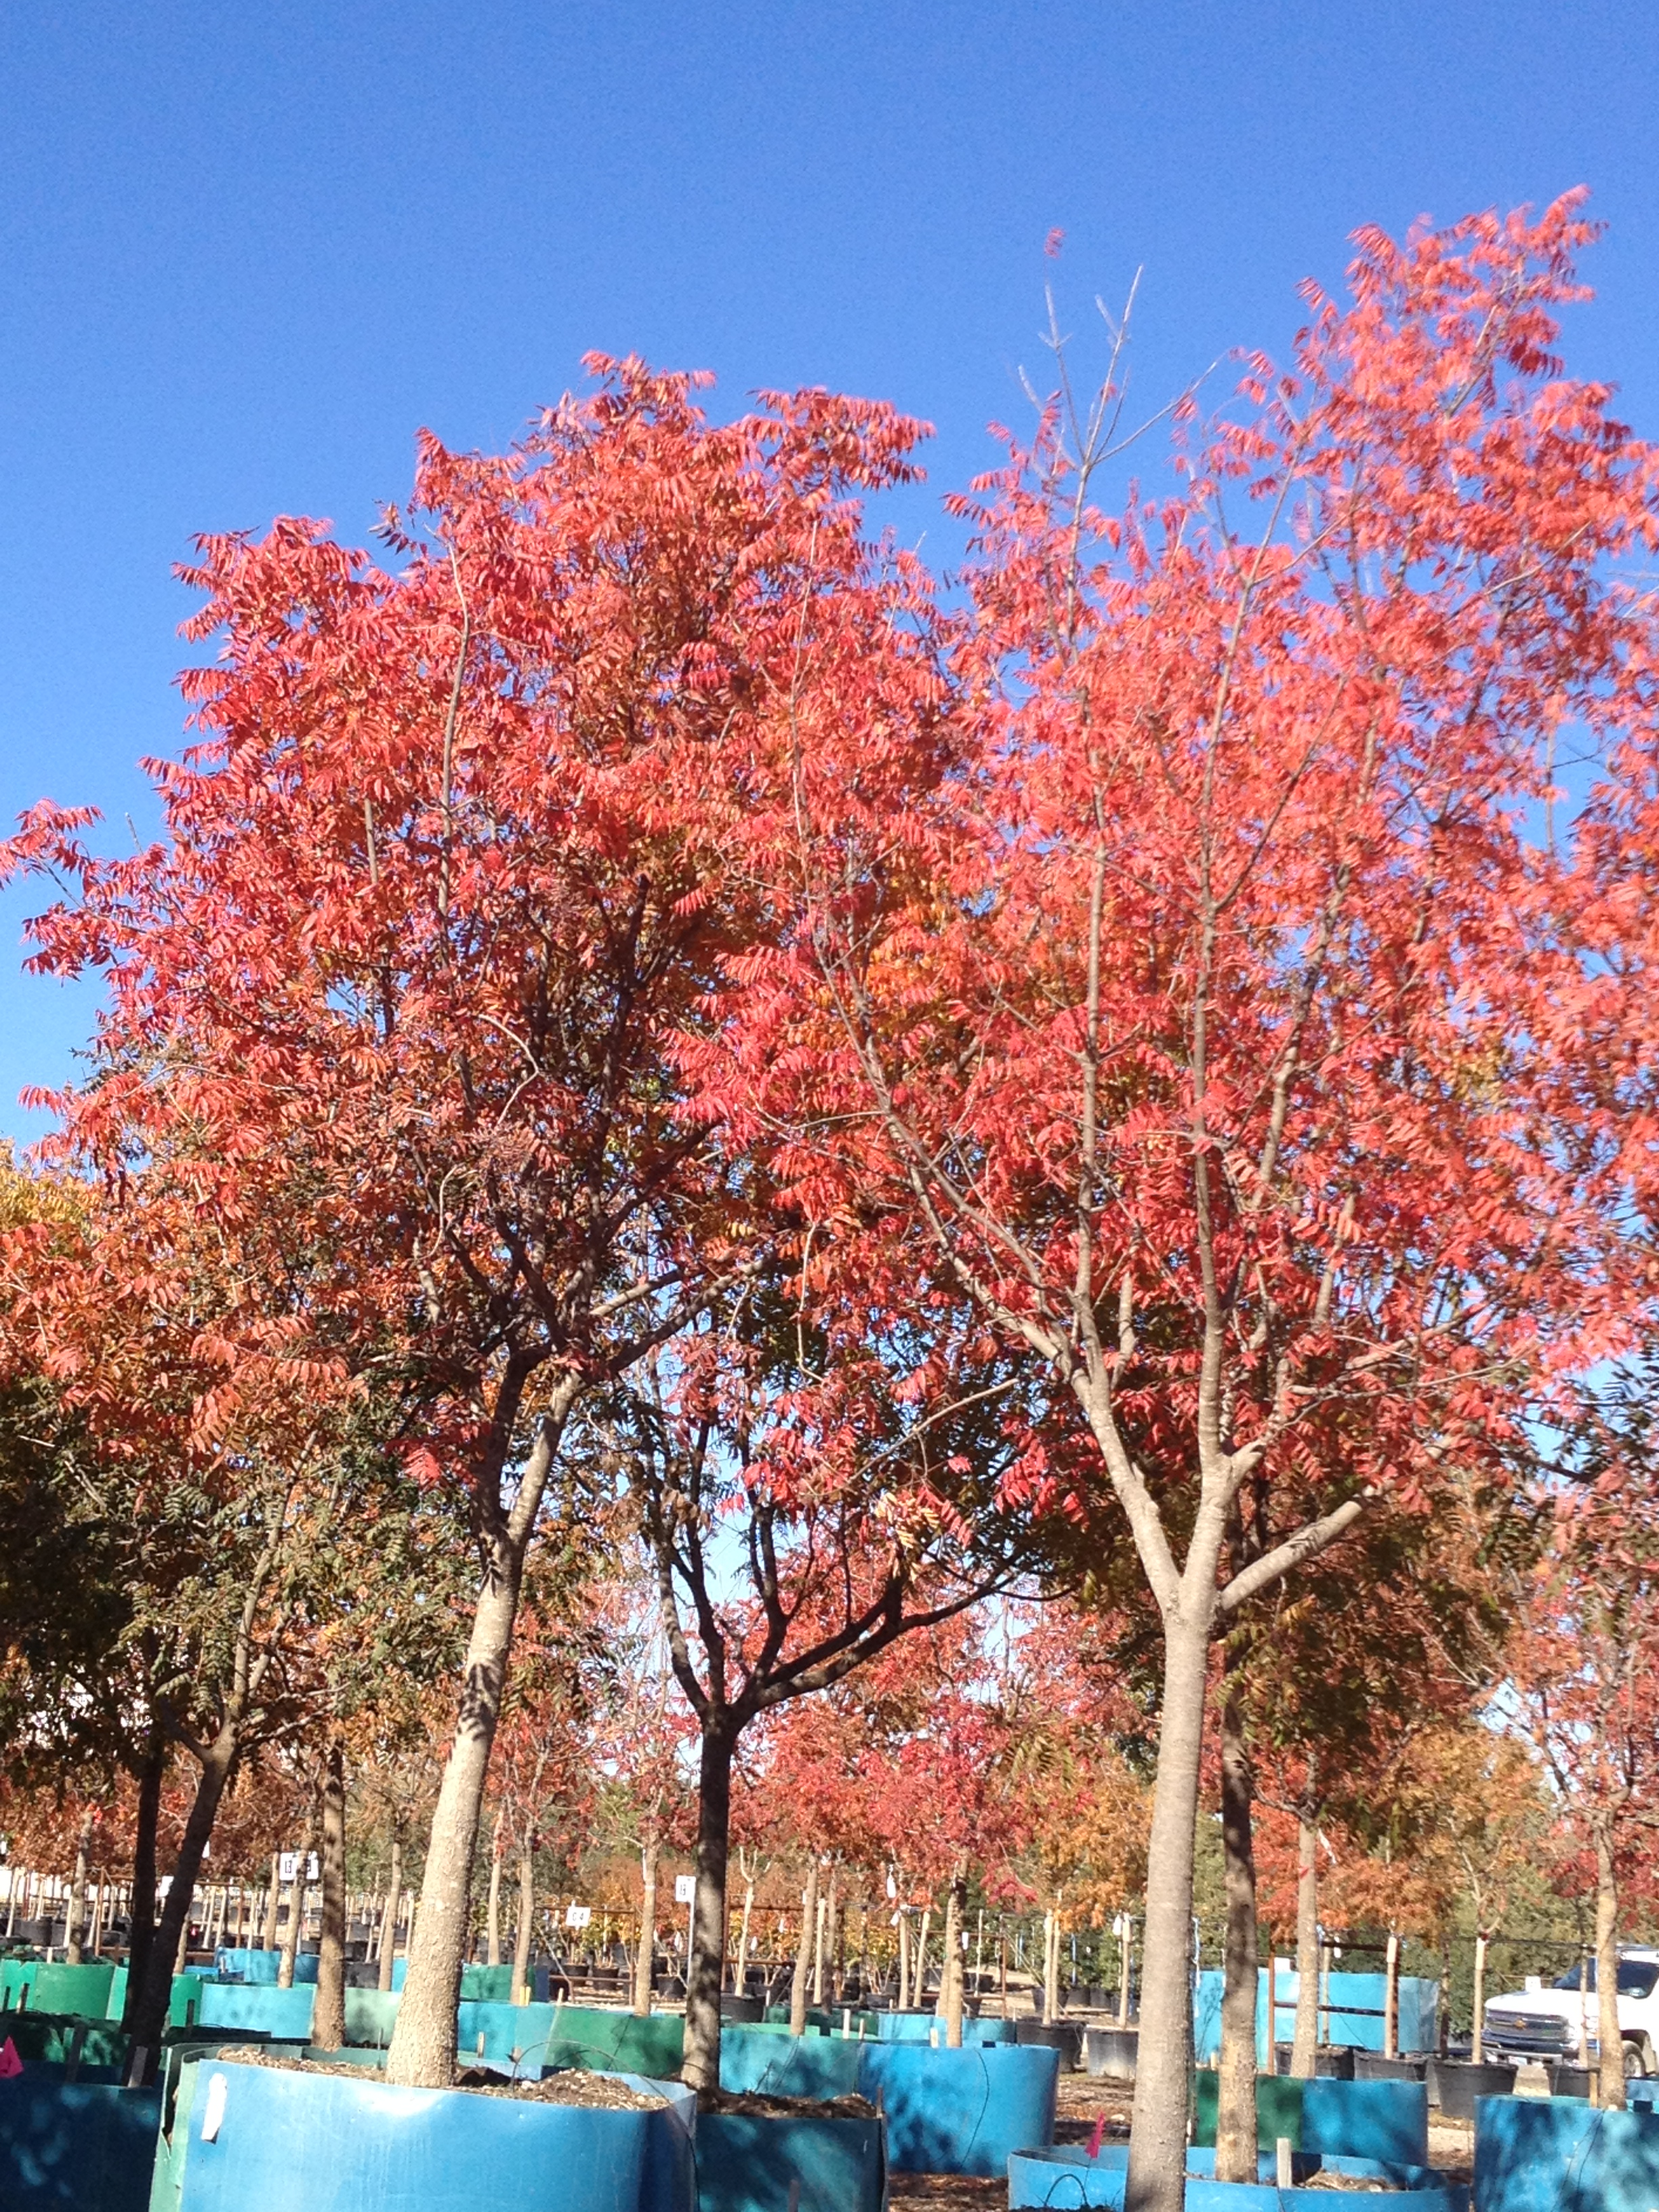 Magnificent Sale Chinese Pistache Tree Leaves Turning Brown Chinese Pistache Fall Color Chinese Pistache Fall Color Fannin Tree Farm Chinese Pistache Tree houzz 01 Chinese Pistache Tree